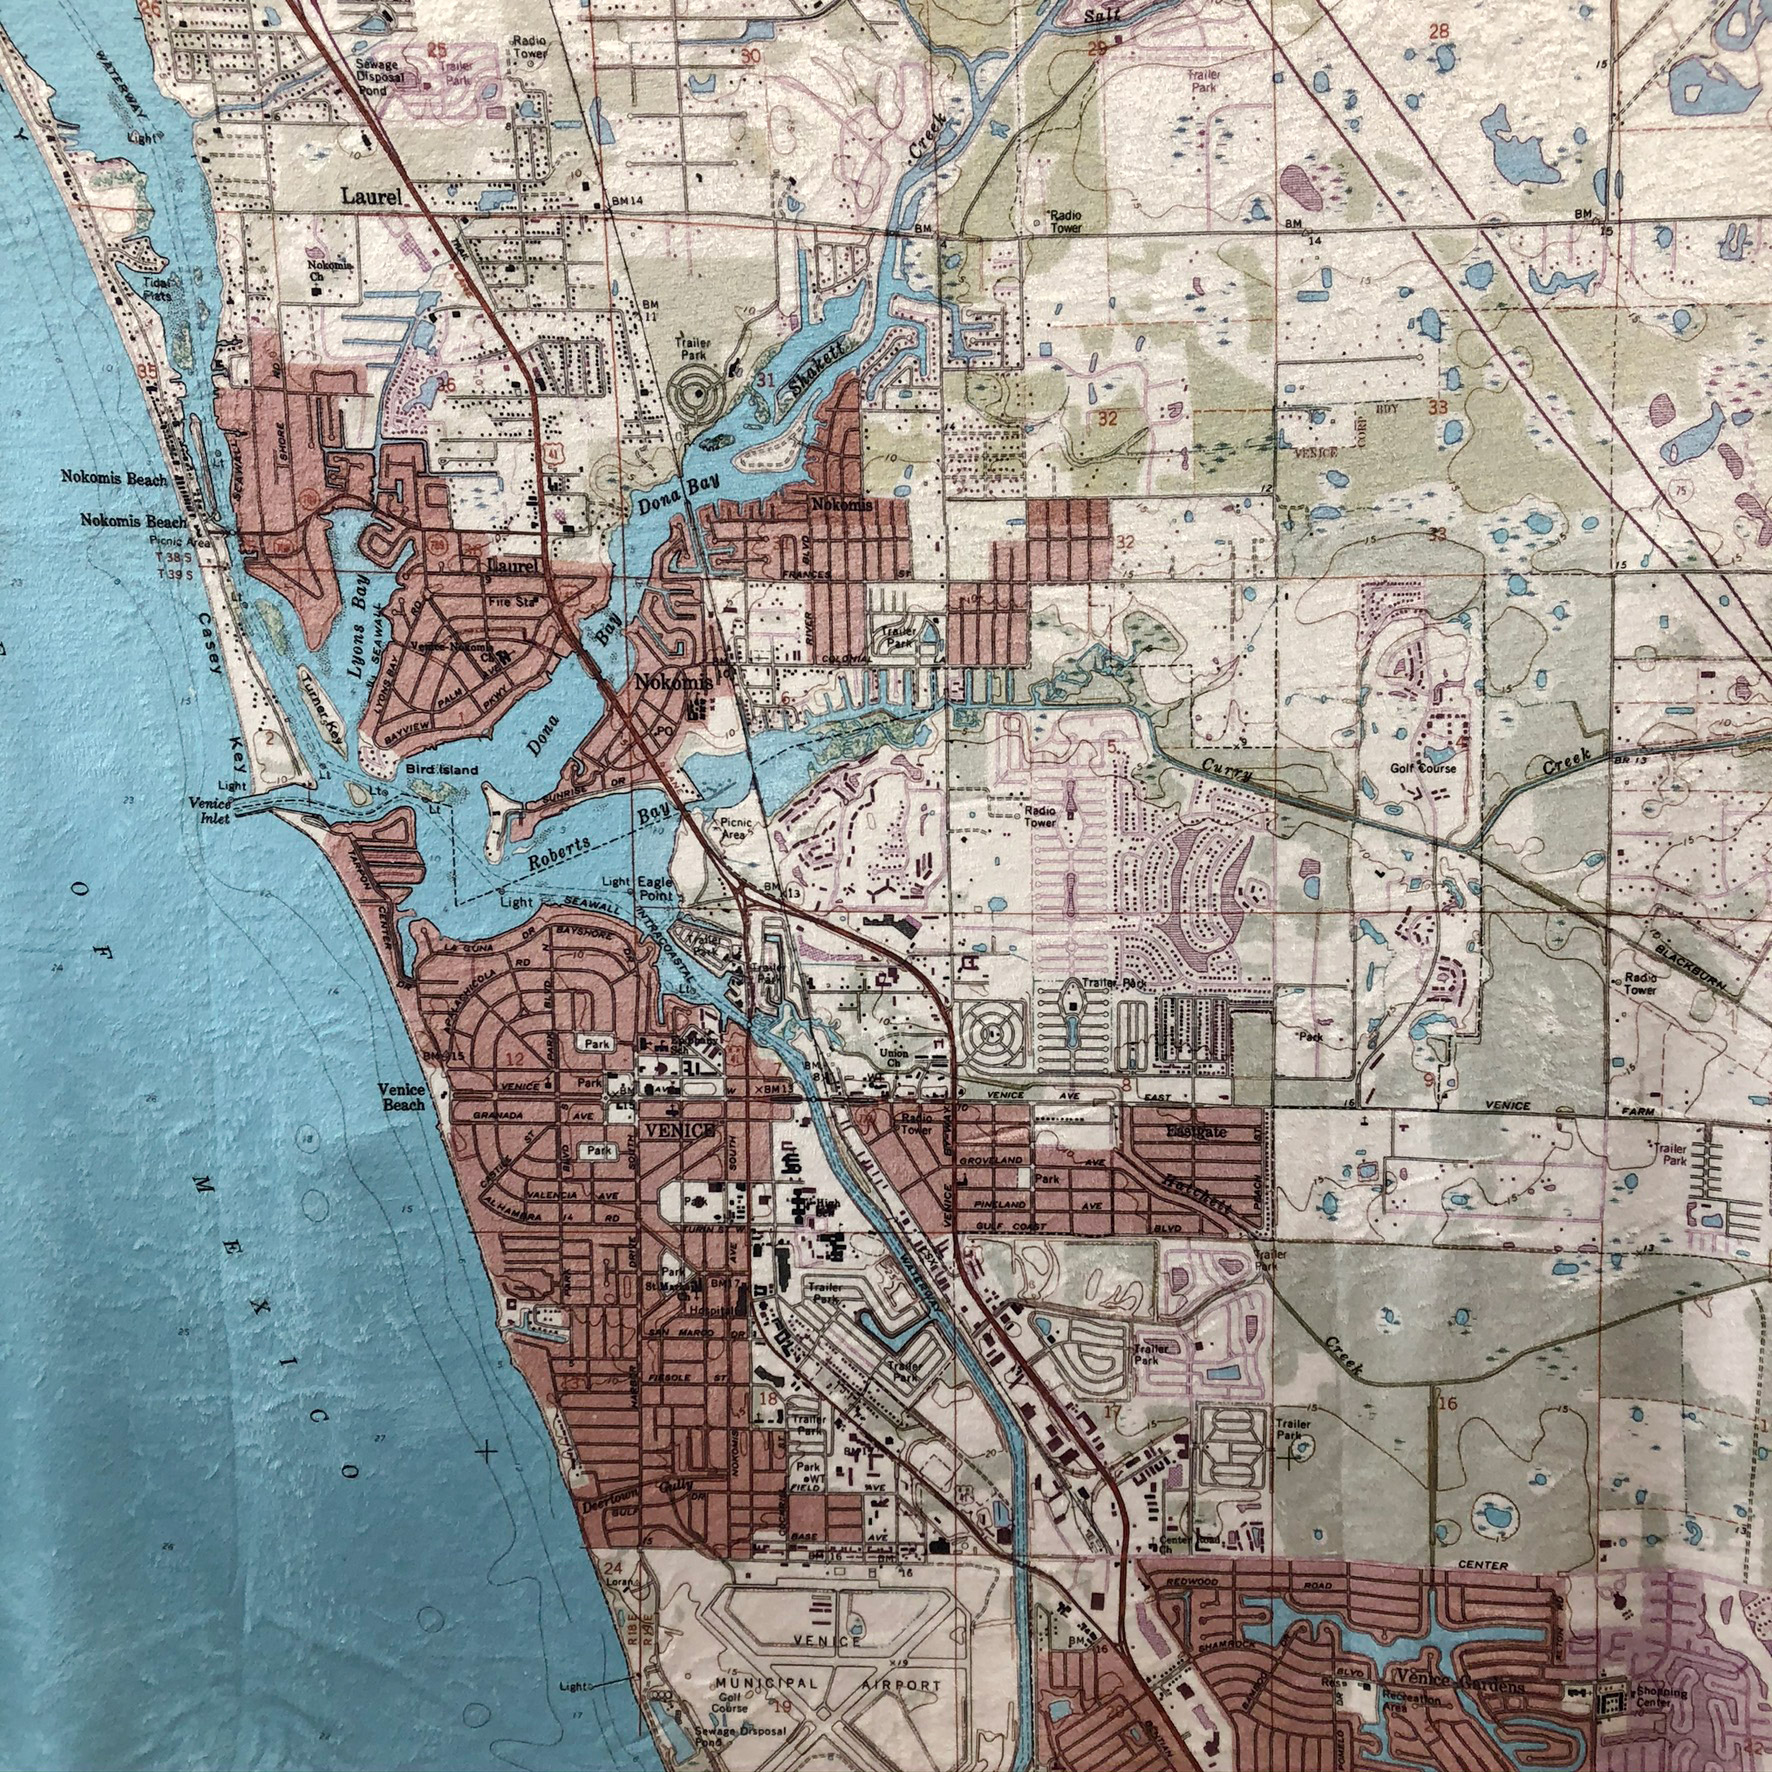 map of Venice Florida on a blanket